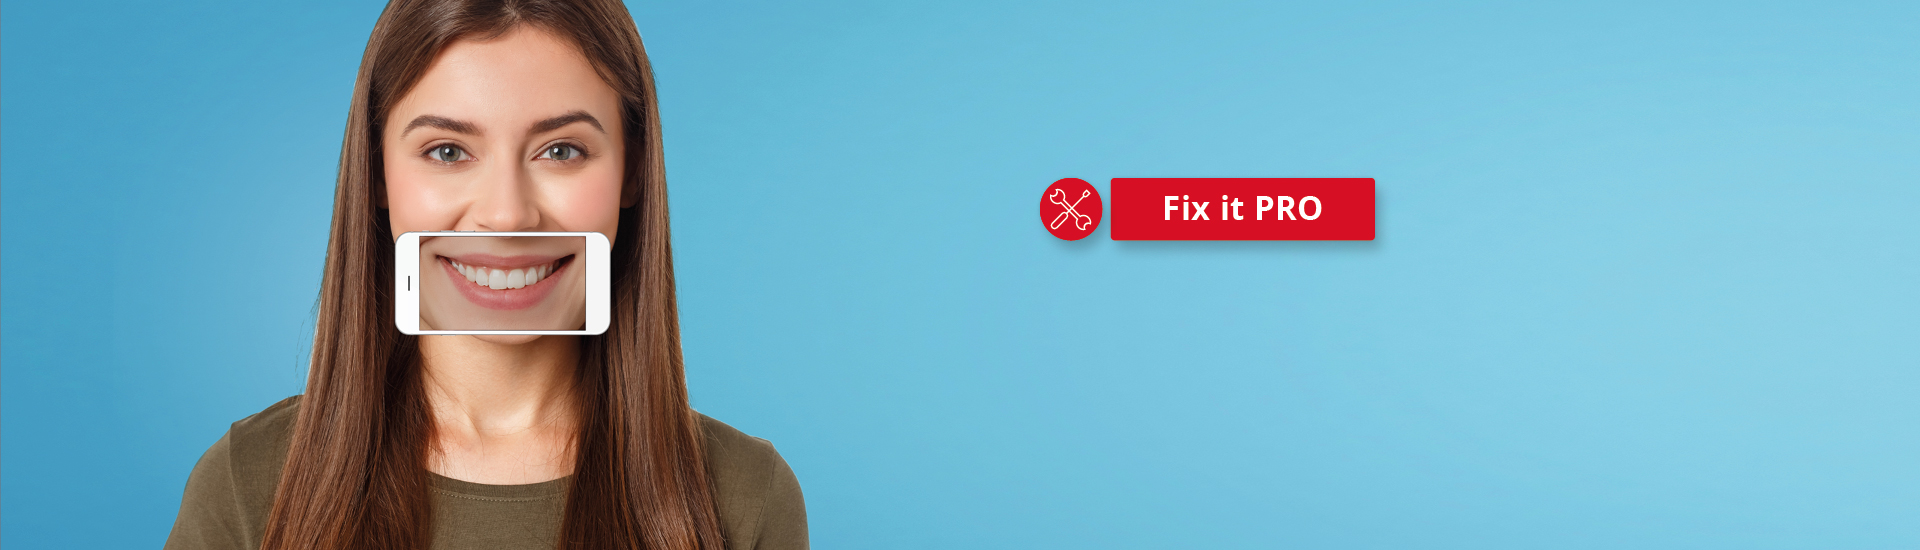 Fix-it-PRO_Header_1920x550px.jpg